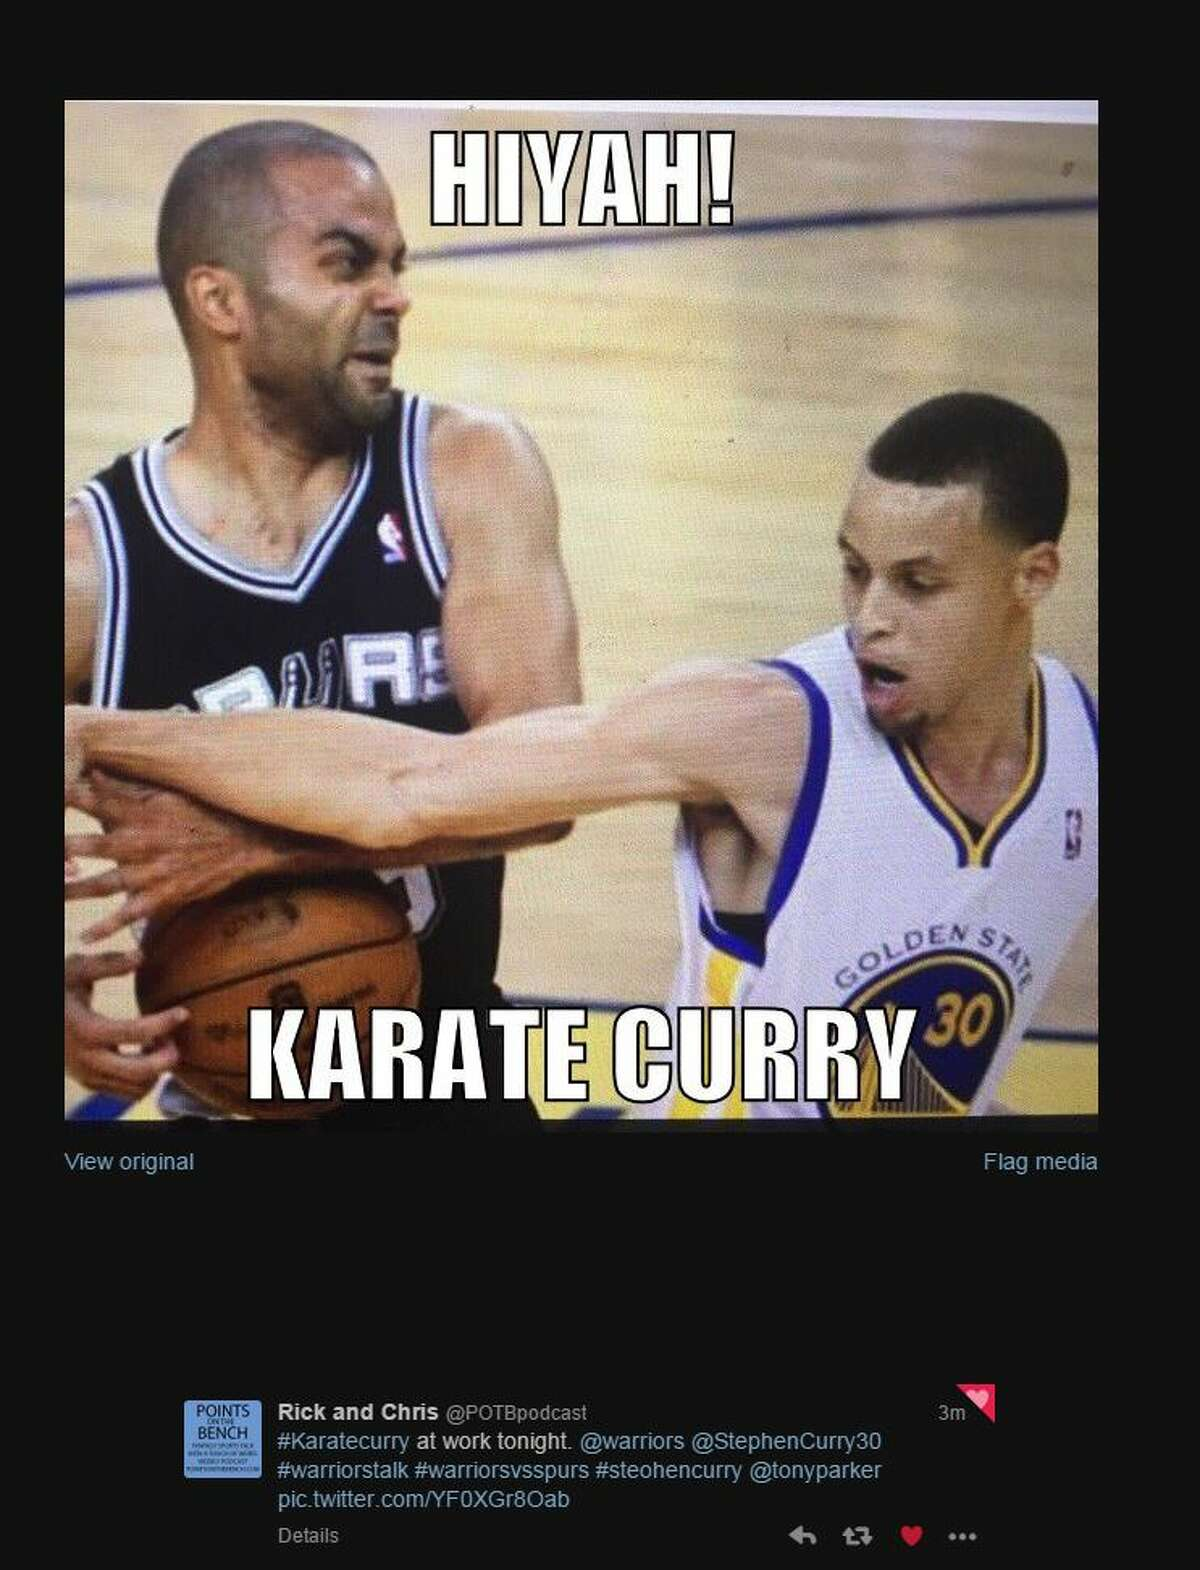 @POTBpodcast #Karatecurry at work tonight. @warriors @stephencurry30 @tonyparker